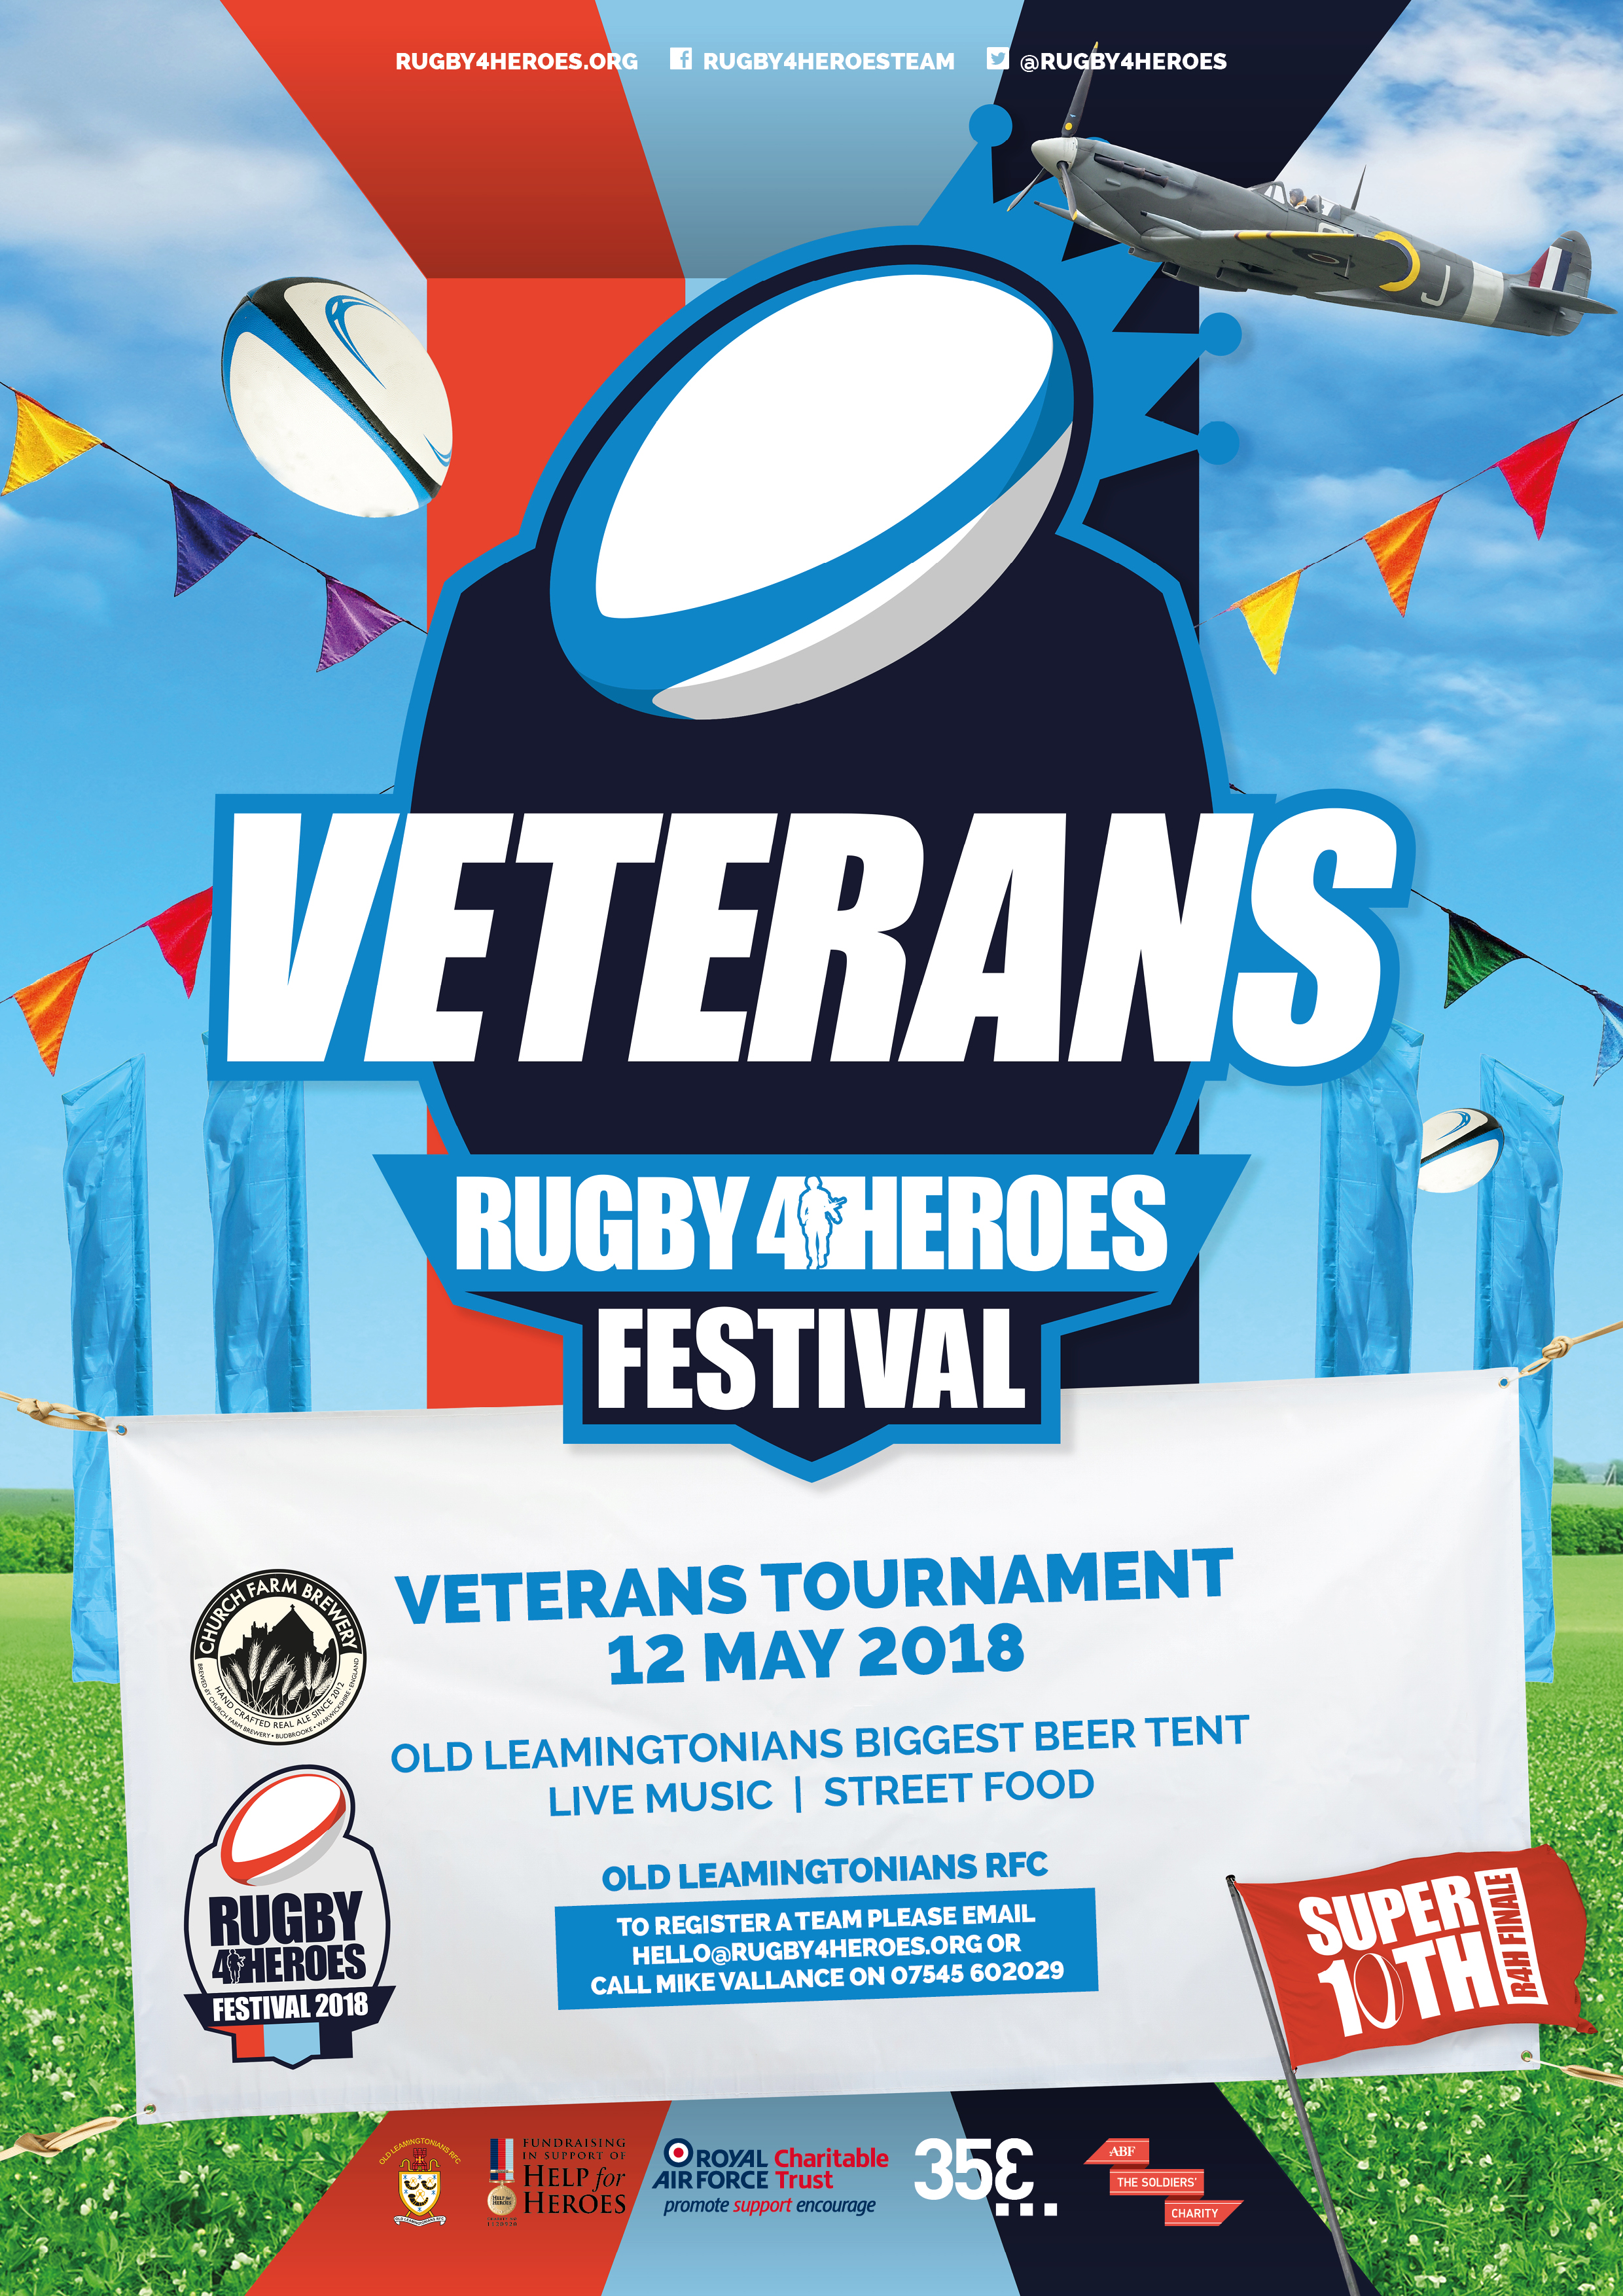 304564_Rugby4Heroes_Posters_A4_Veterans